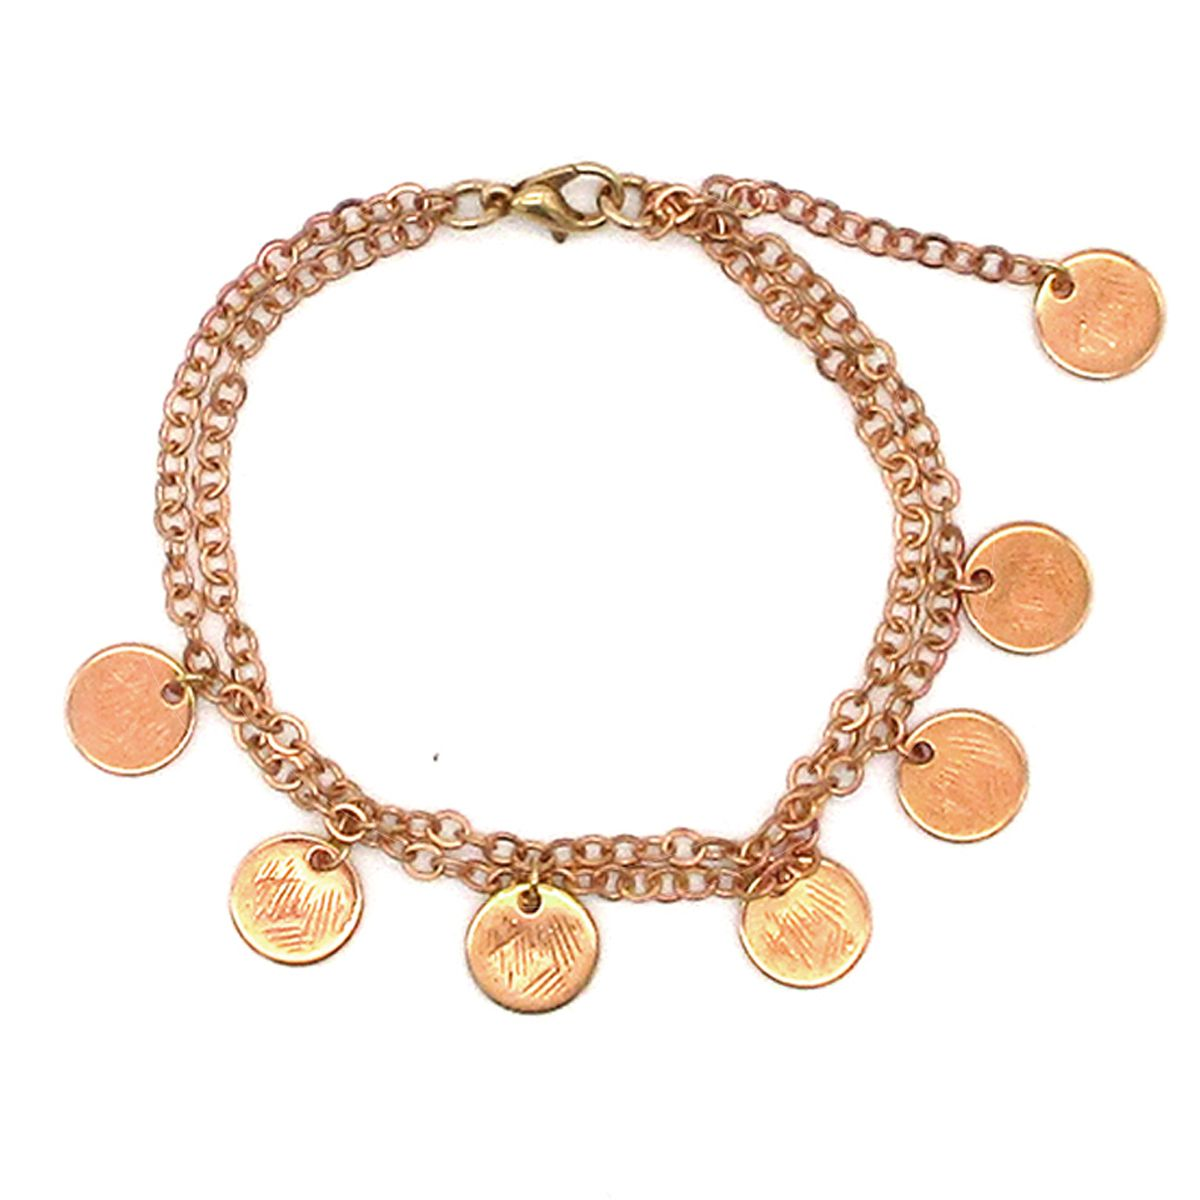 Europa double chain Rose Gold coin bracelet